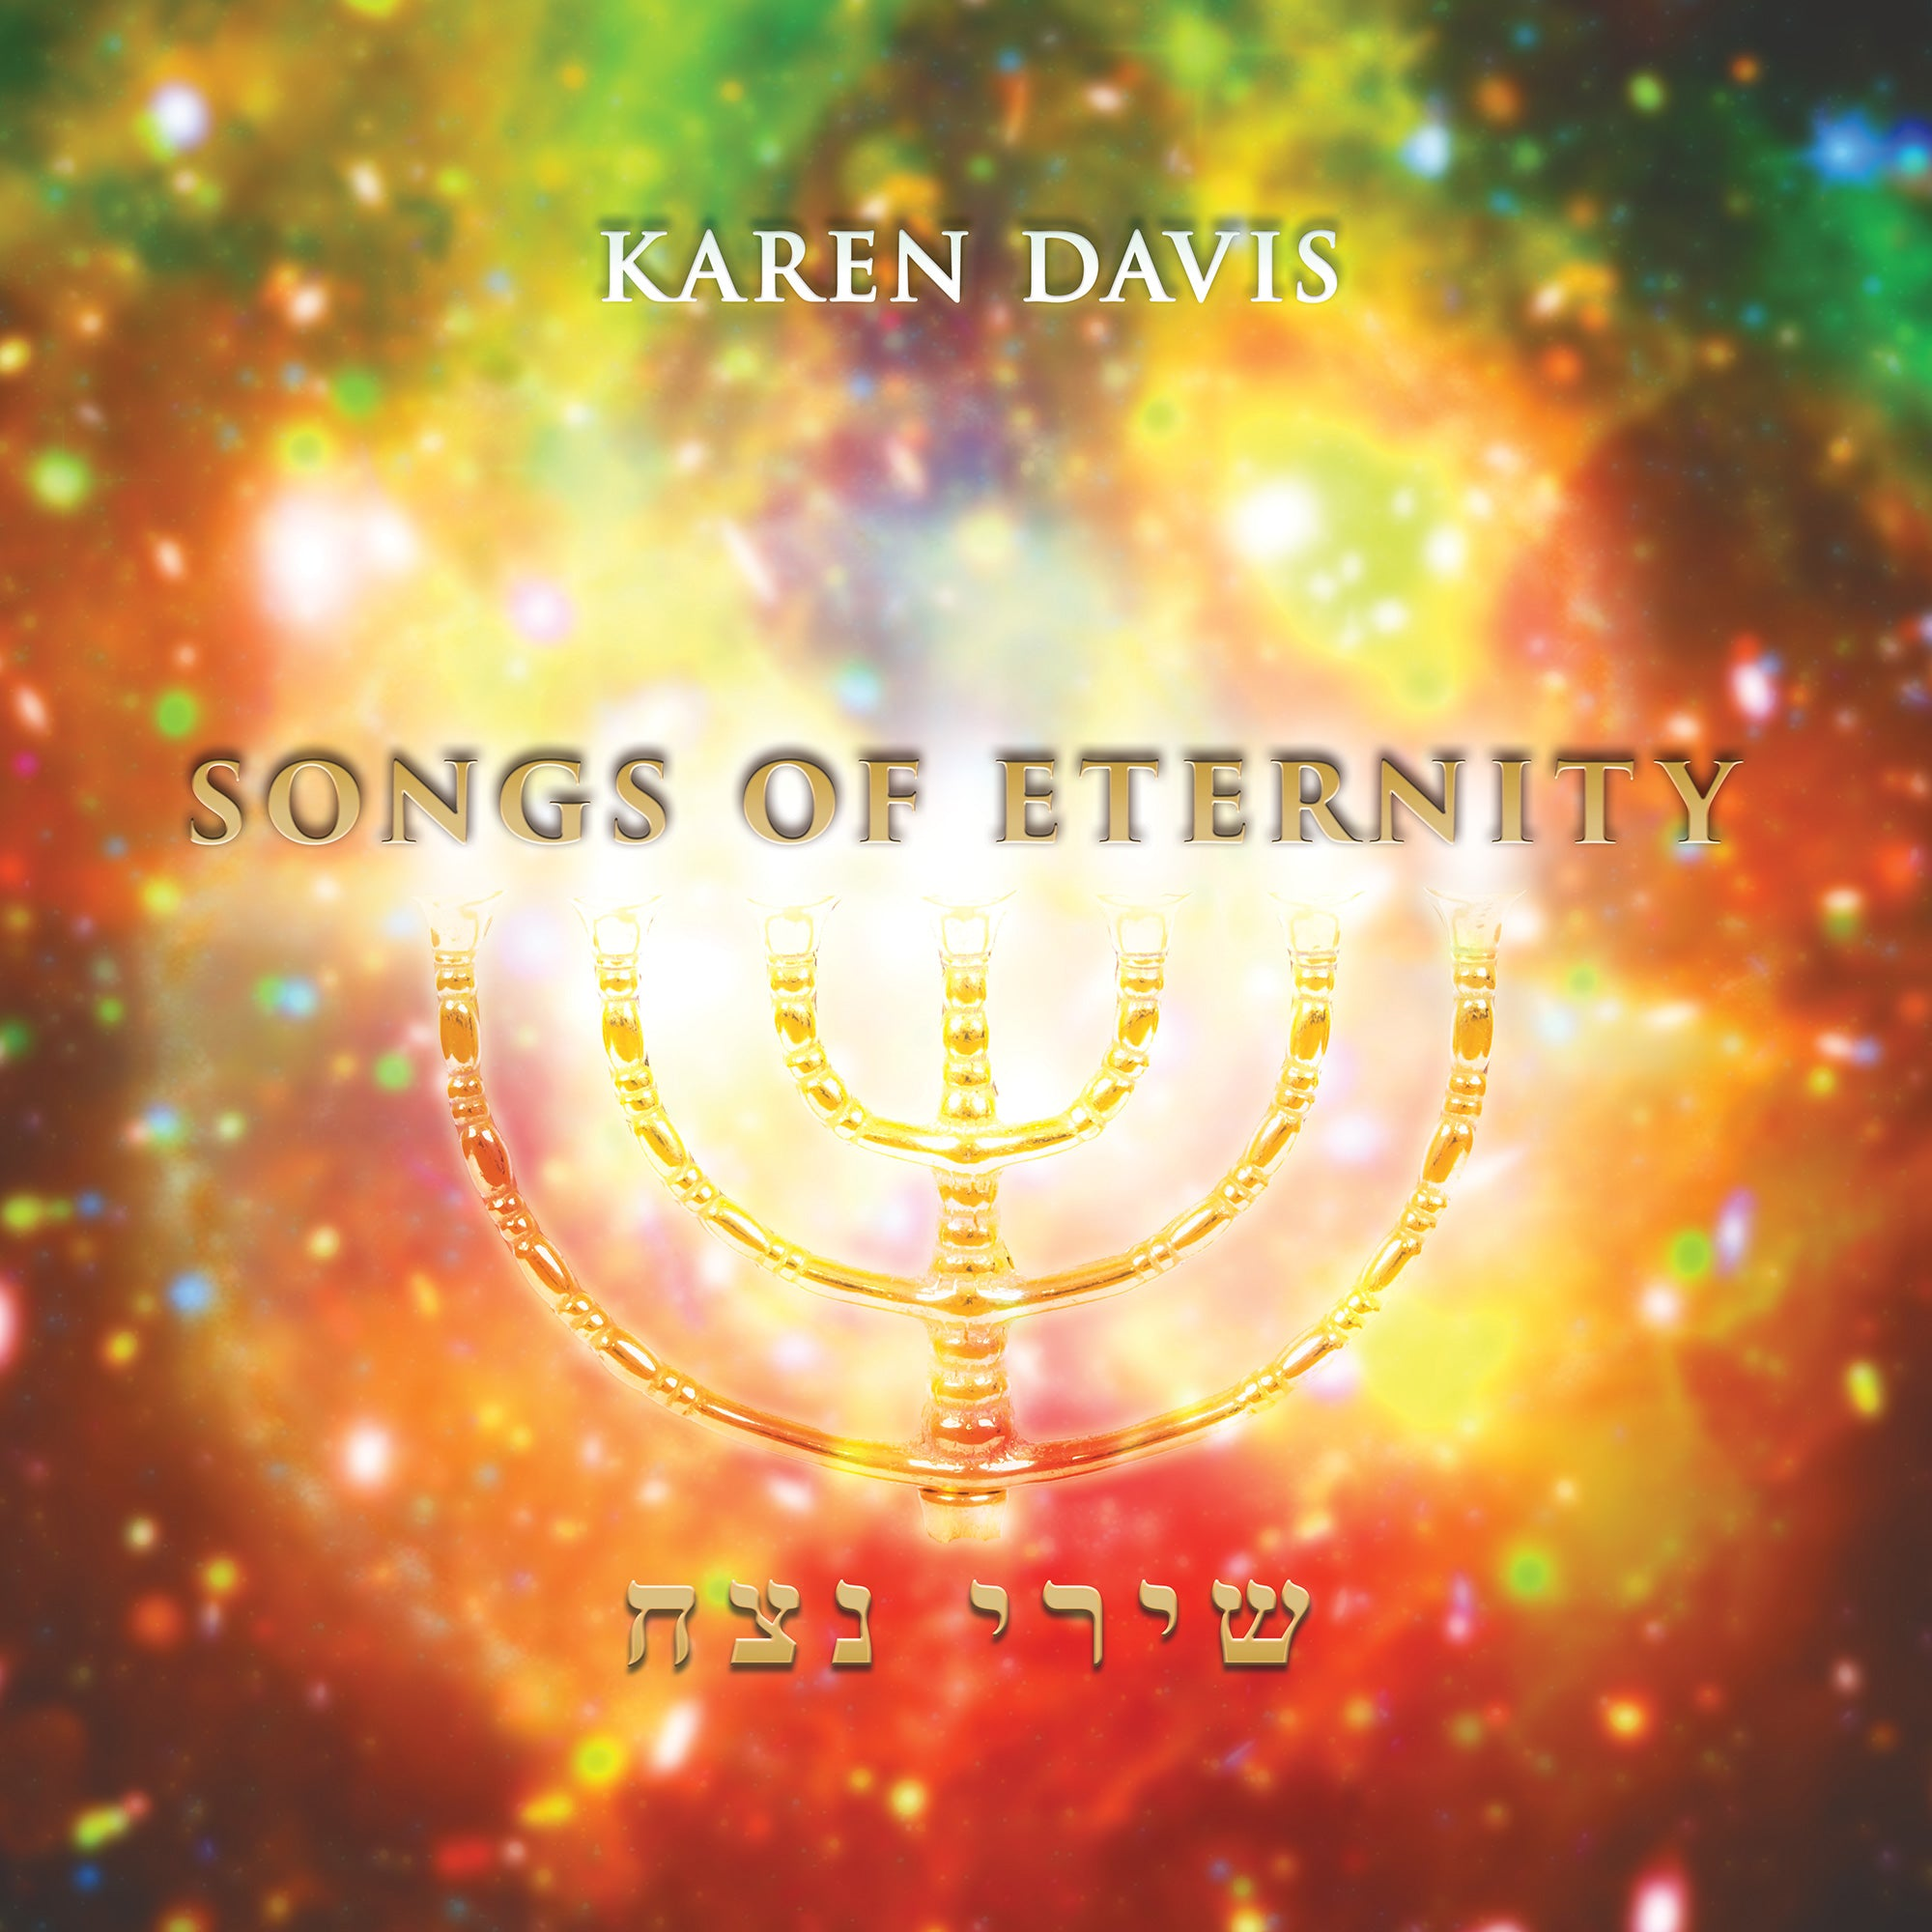 Songs of Eternity